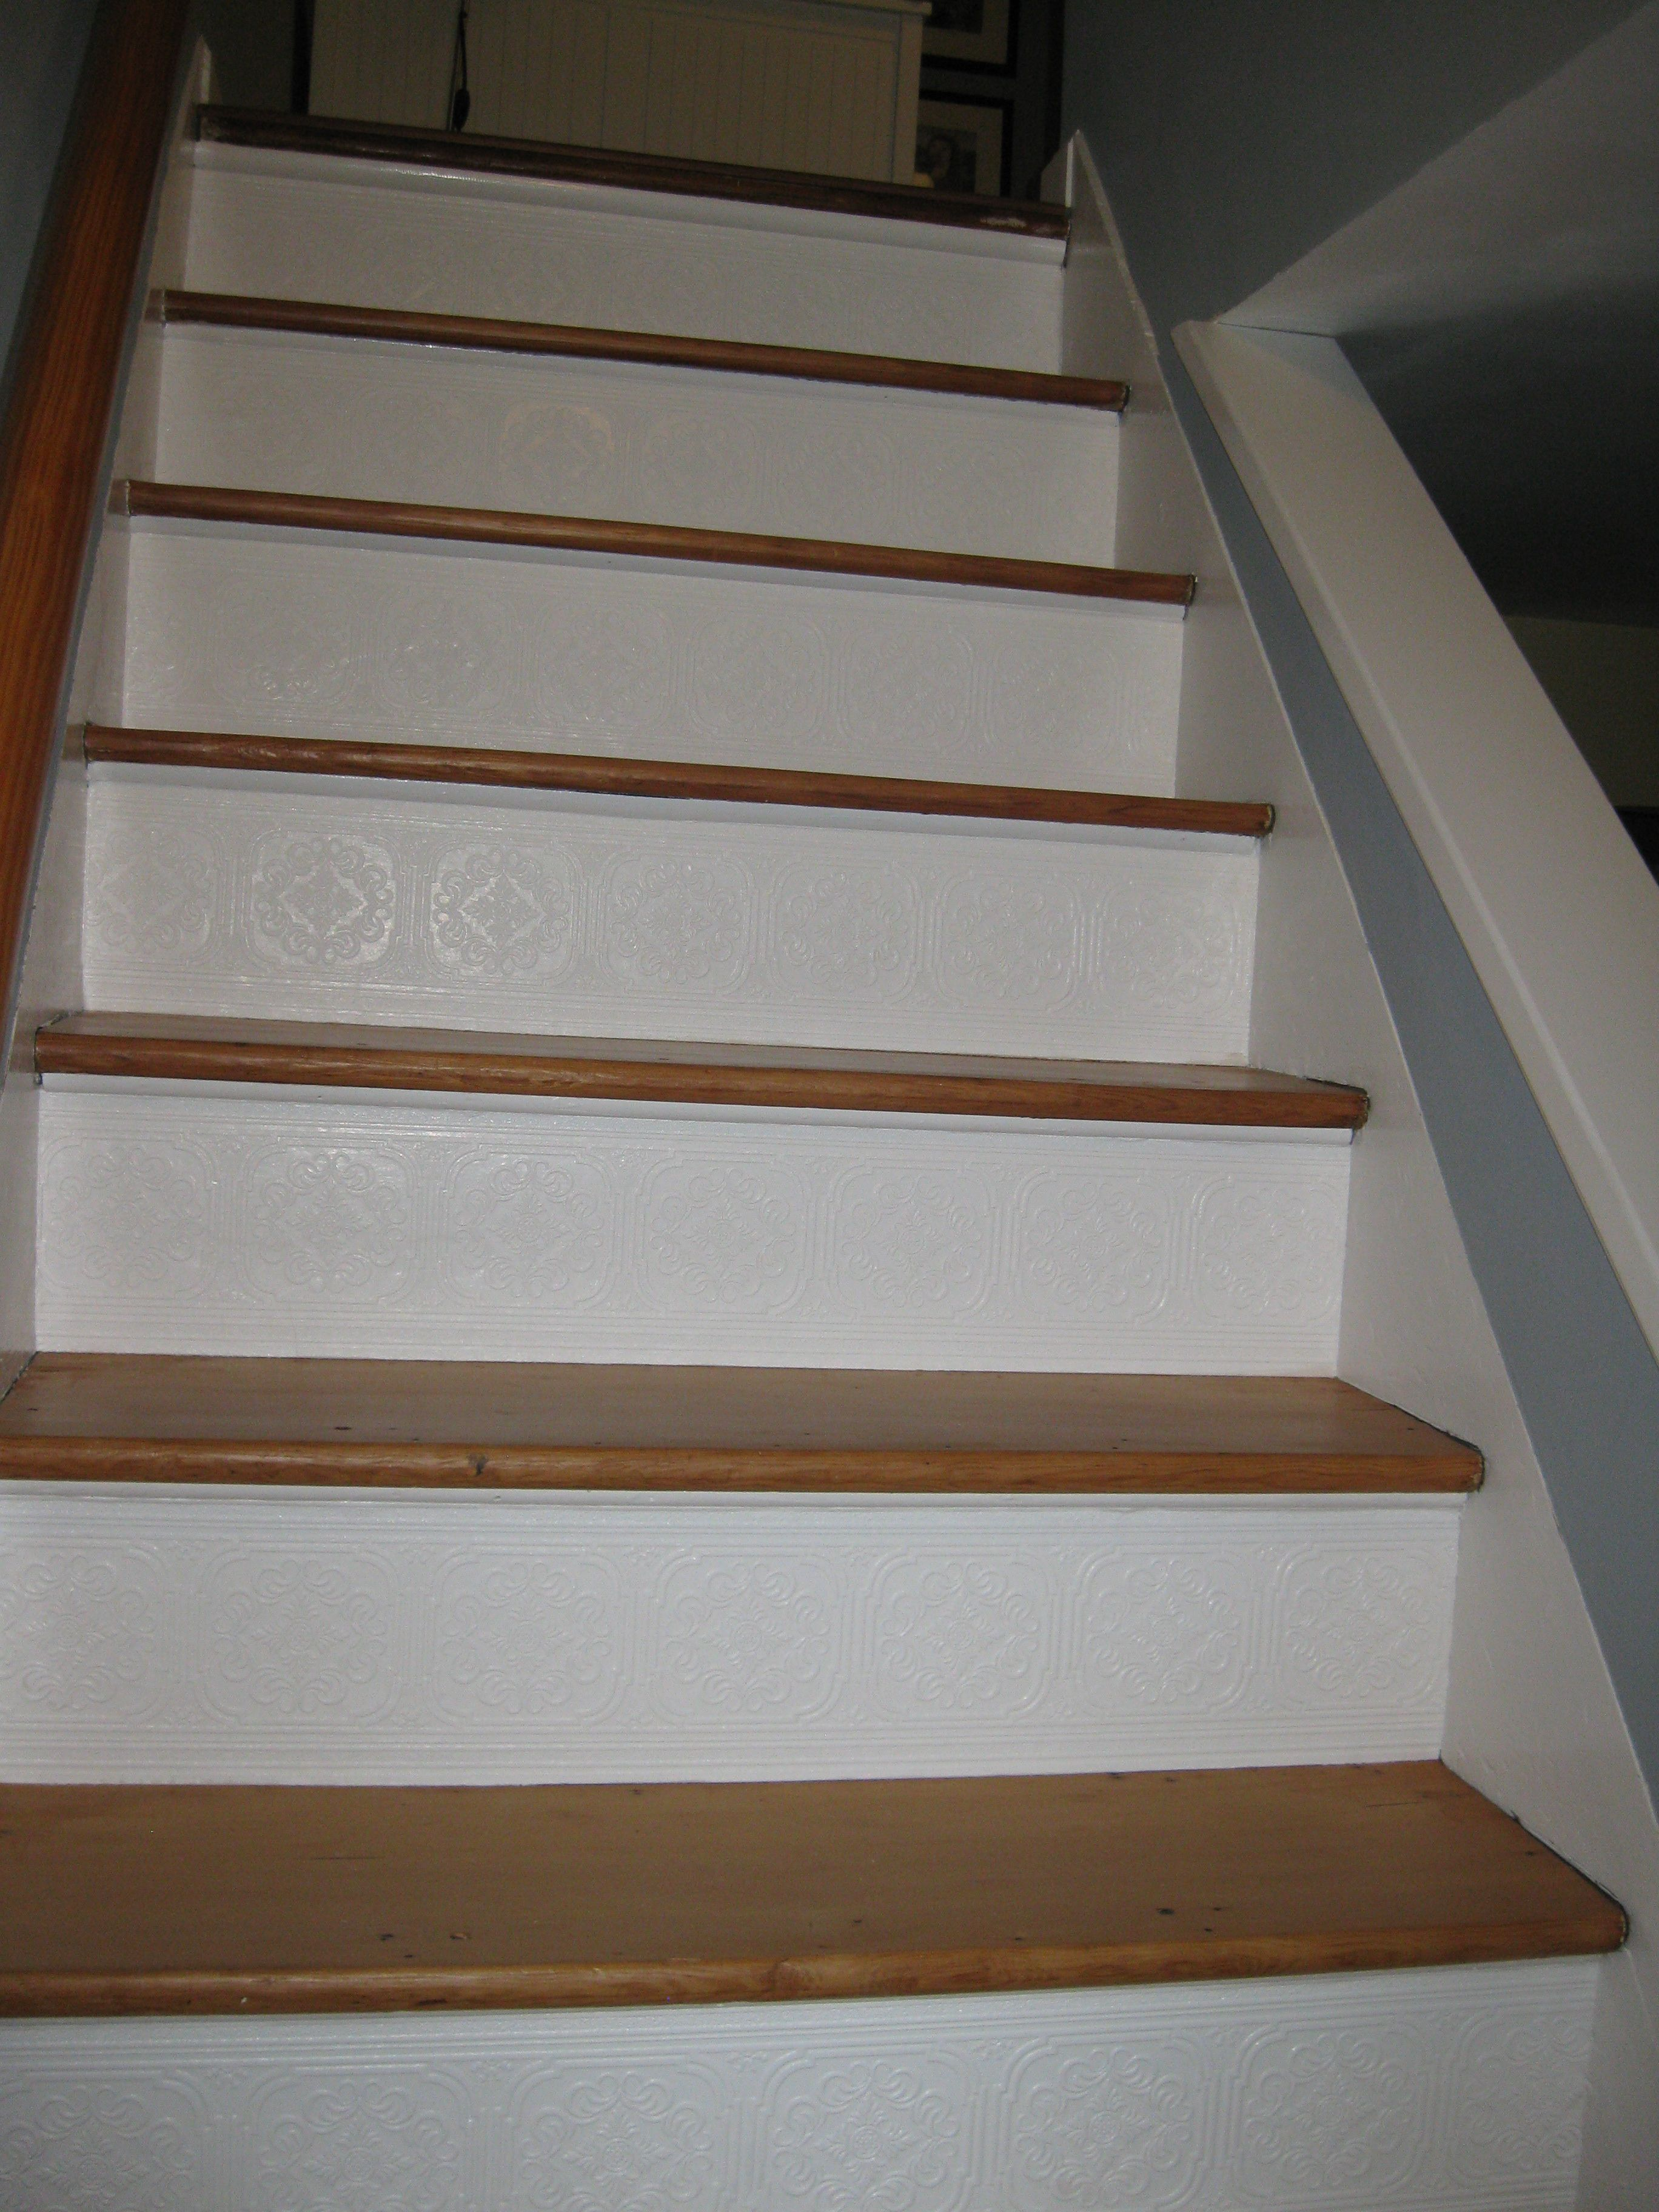 Stair Risers Finished With Paintable, Textured Wallpaper Border.